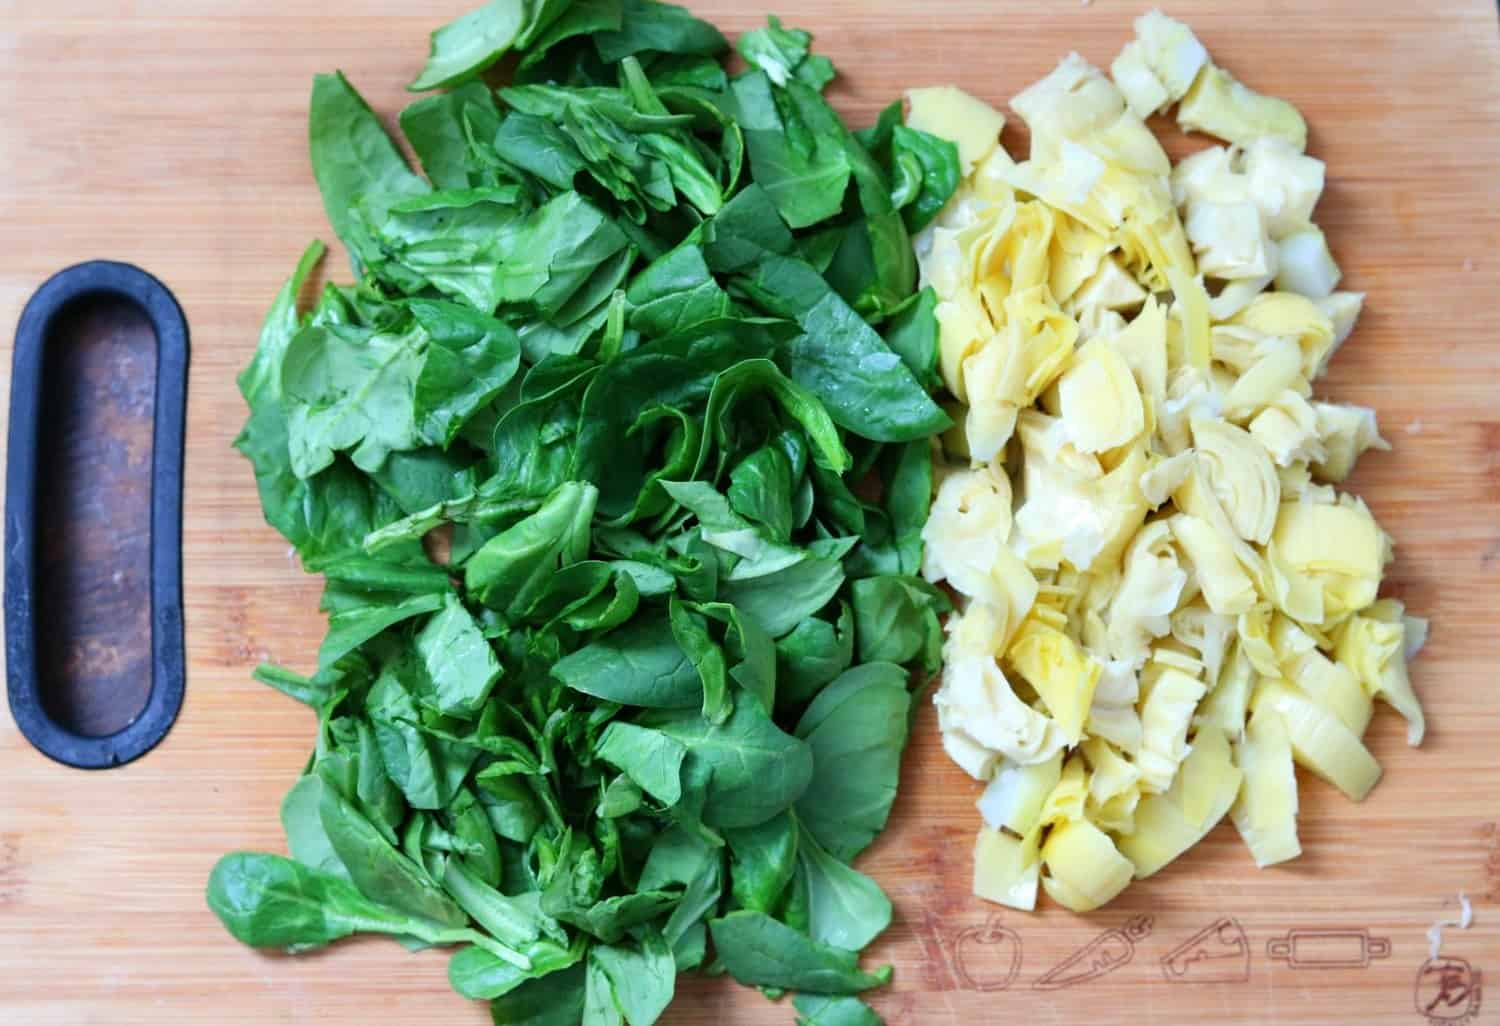 Chopped spinach and artichokes on a cutting board